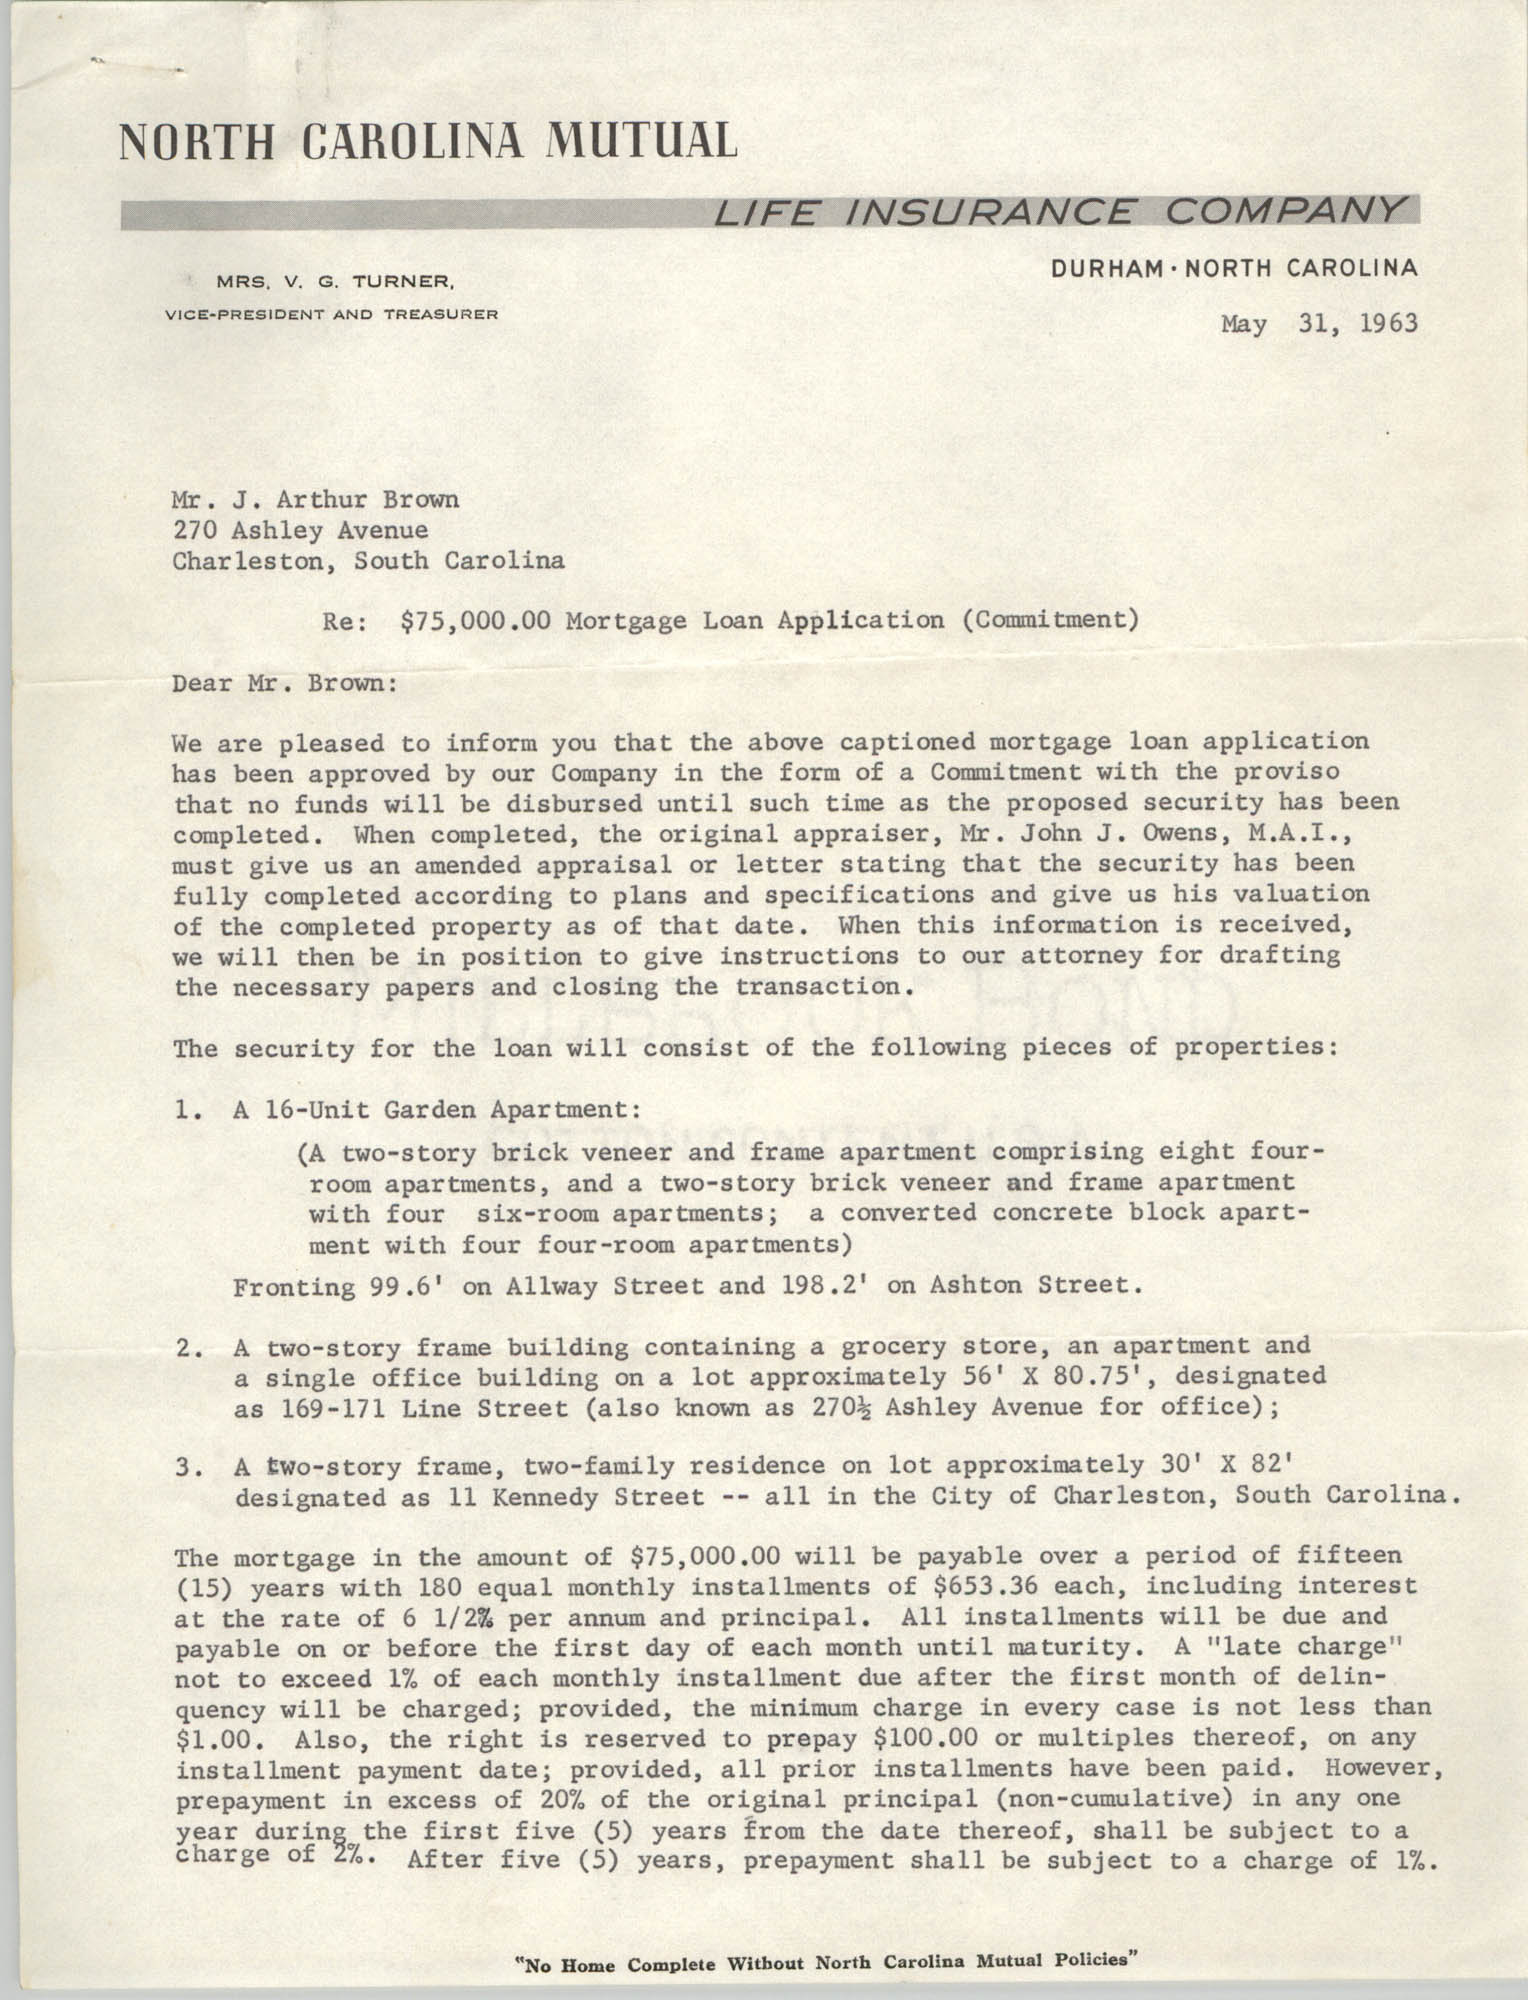 Letter from V. G. Turner to J. Arthur Brown, May 31, 1963